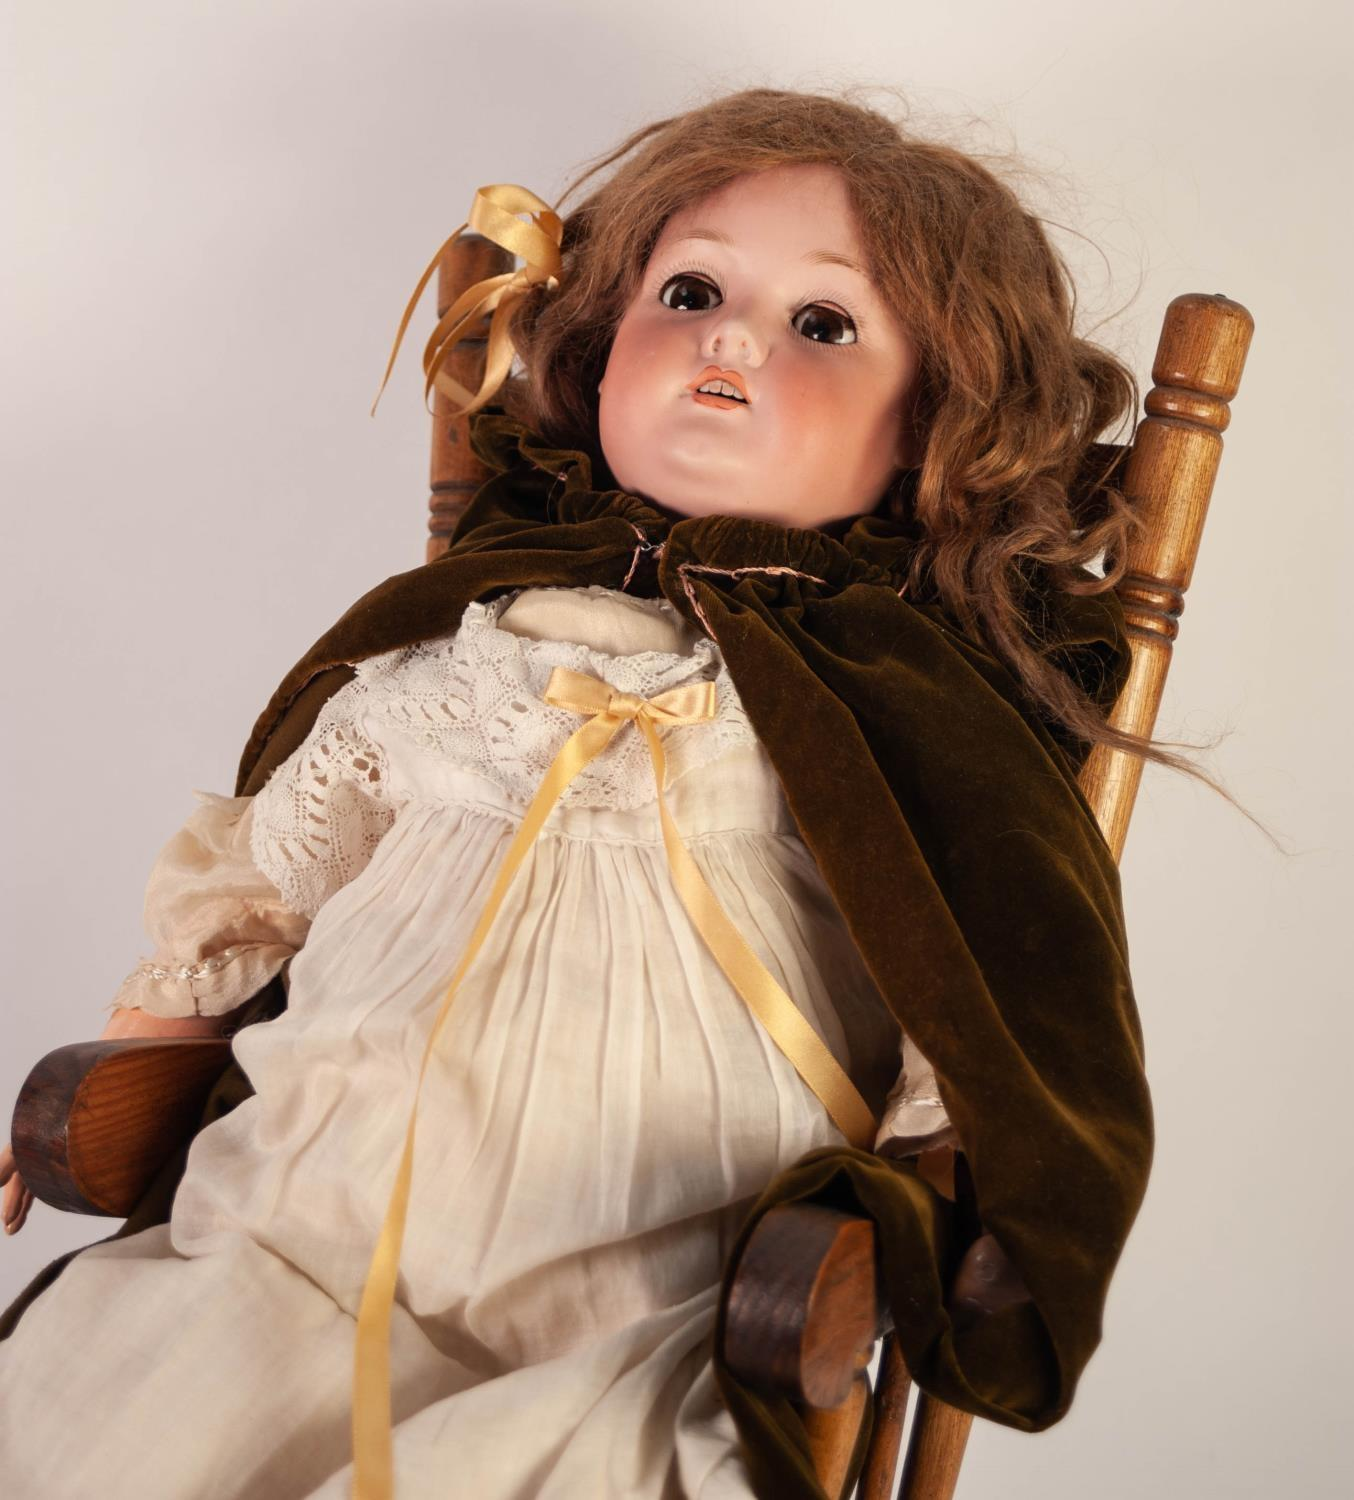 Lot 507 - EARLY 1900s WALTERHAUSEN, GERMANY, BISQUE HEAD DOLL, NUMBERED 1916, 10a with sleeping brown eyes and